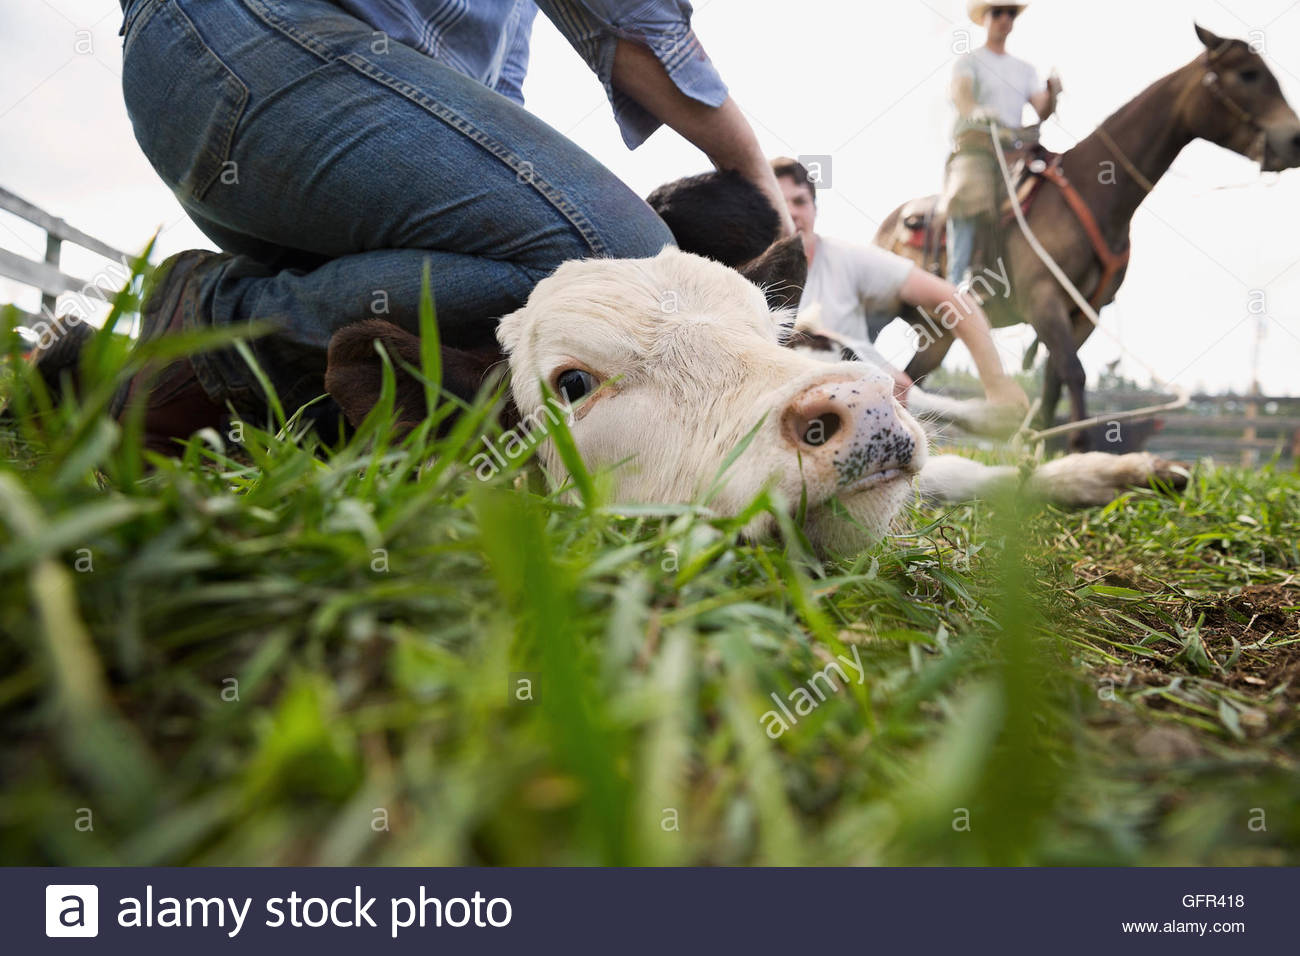 Cattle ranchers holding cow down for branding - Stock Image